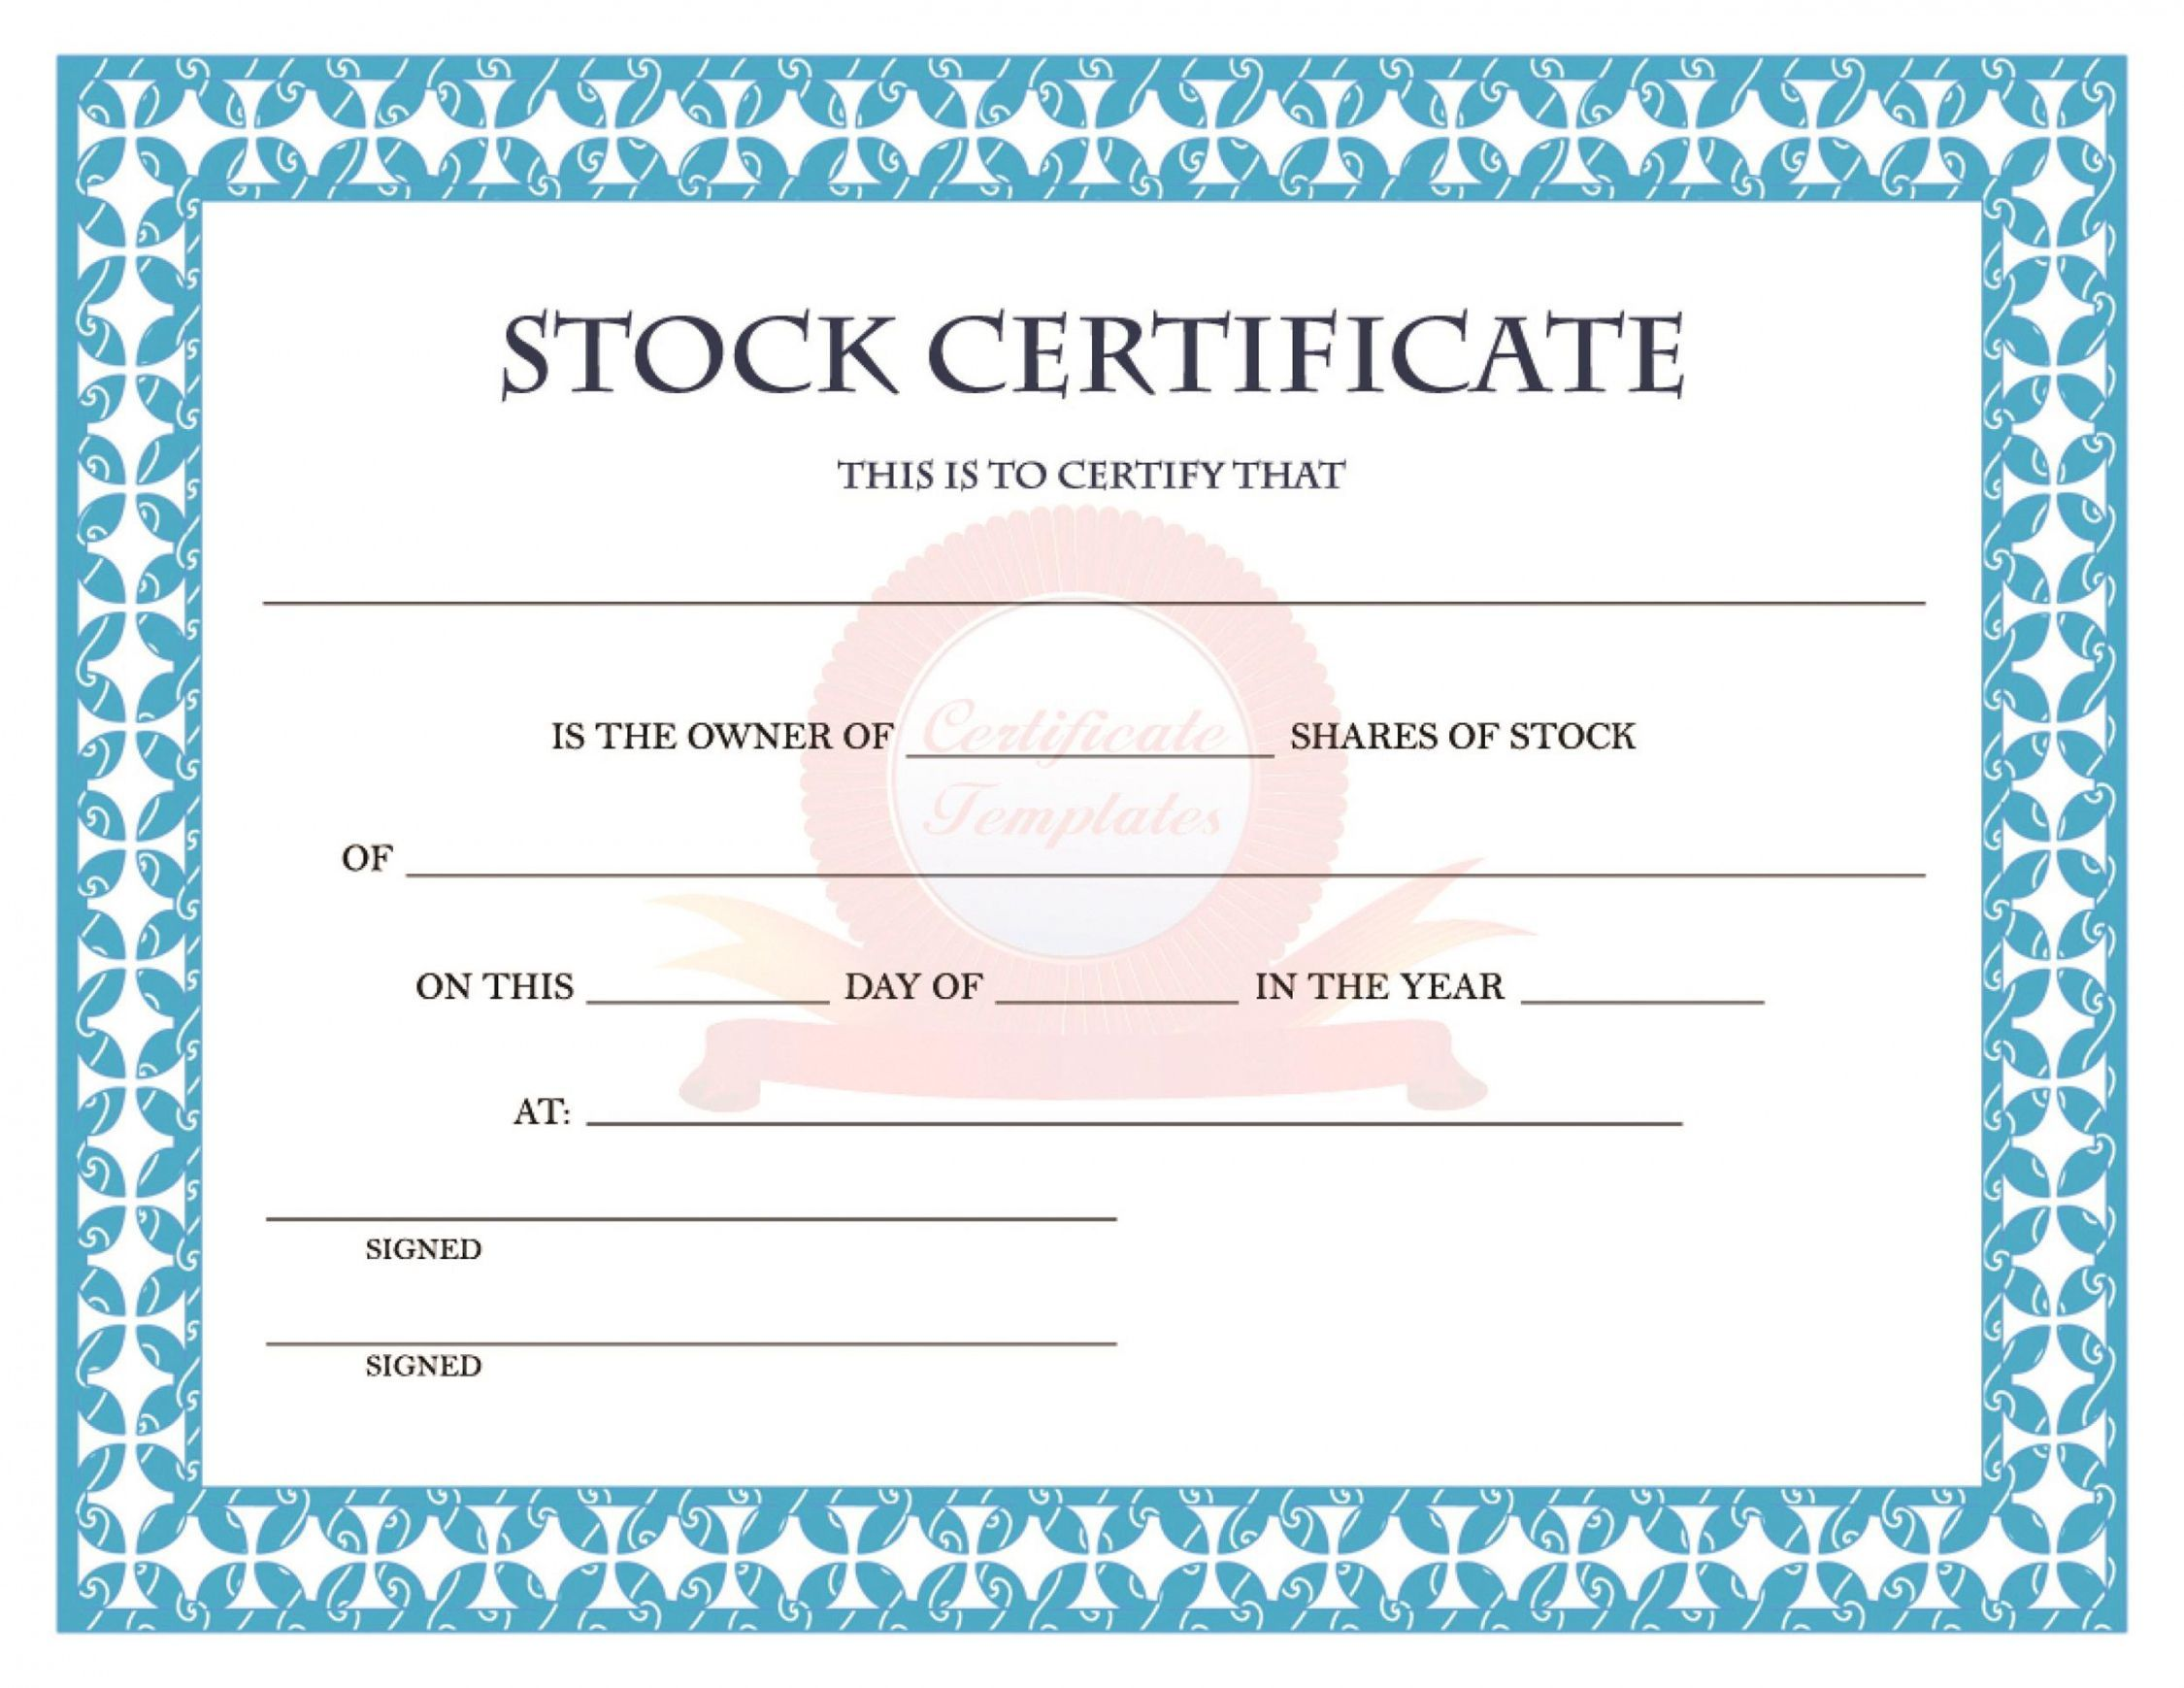 Get Our Image Of Electronic Stock Certificate Template Stock Certificates Certificate Templates Certificate